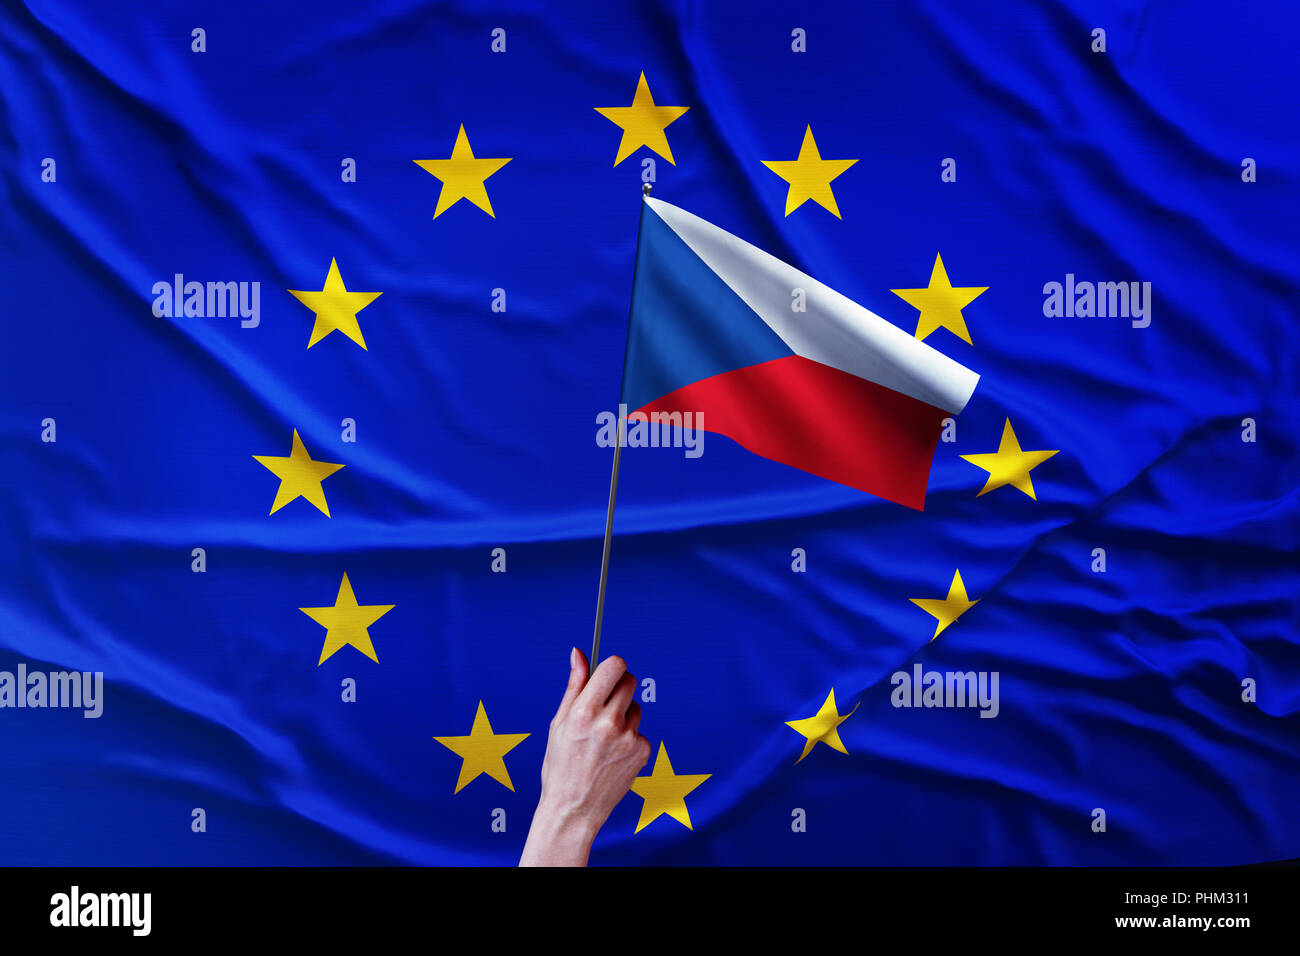 Flag of the European Union and Czech Republic - Stock Image